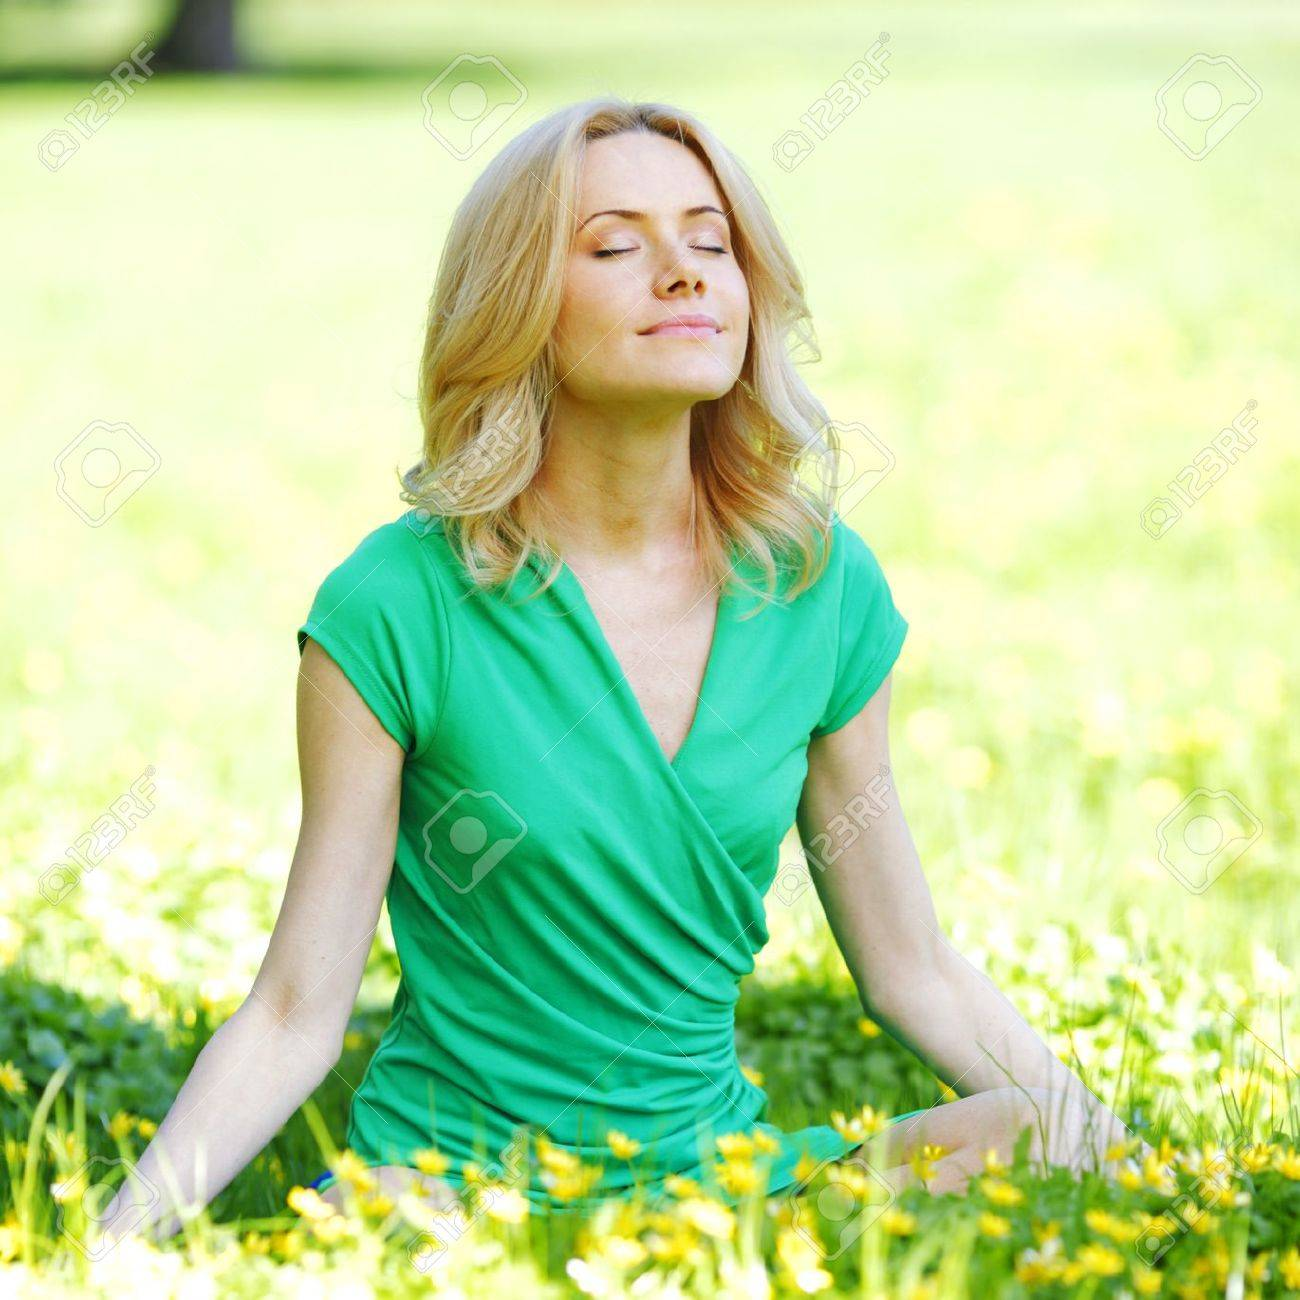 Beautiful young woman sitting on flower field in lotus pose Stock Photo - 19761840